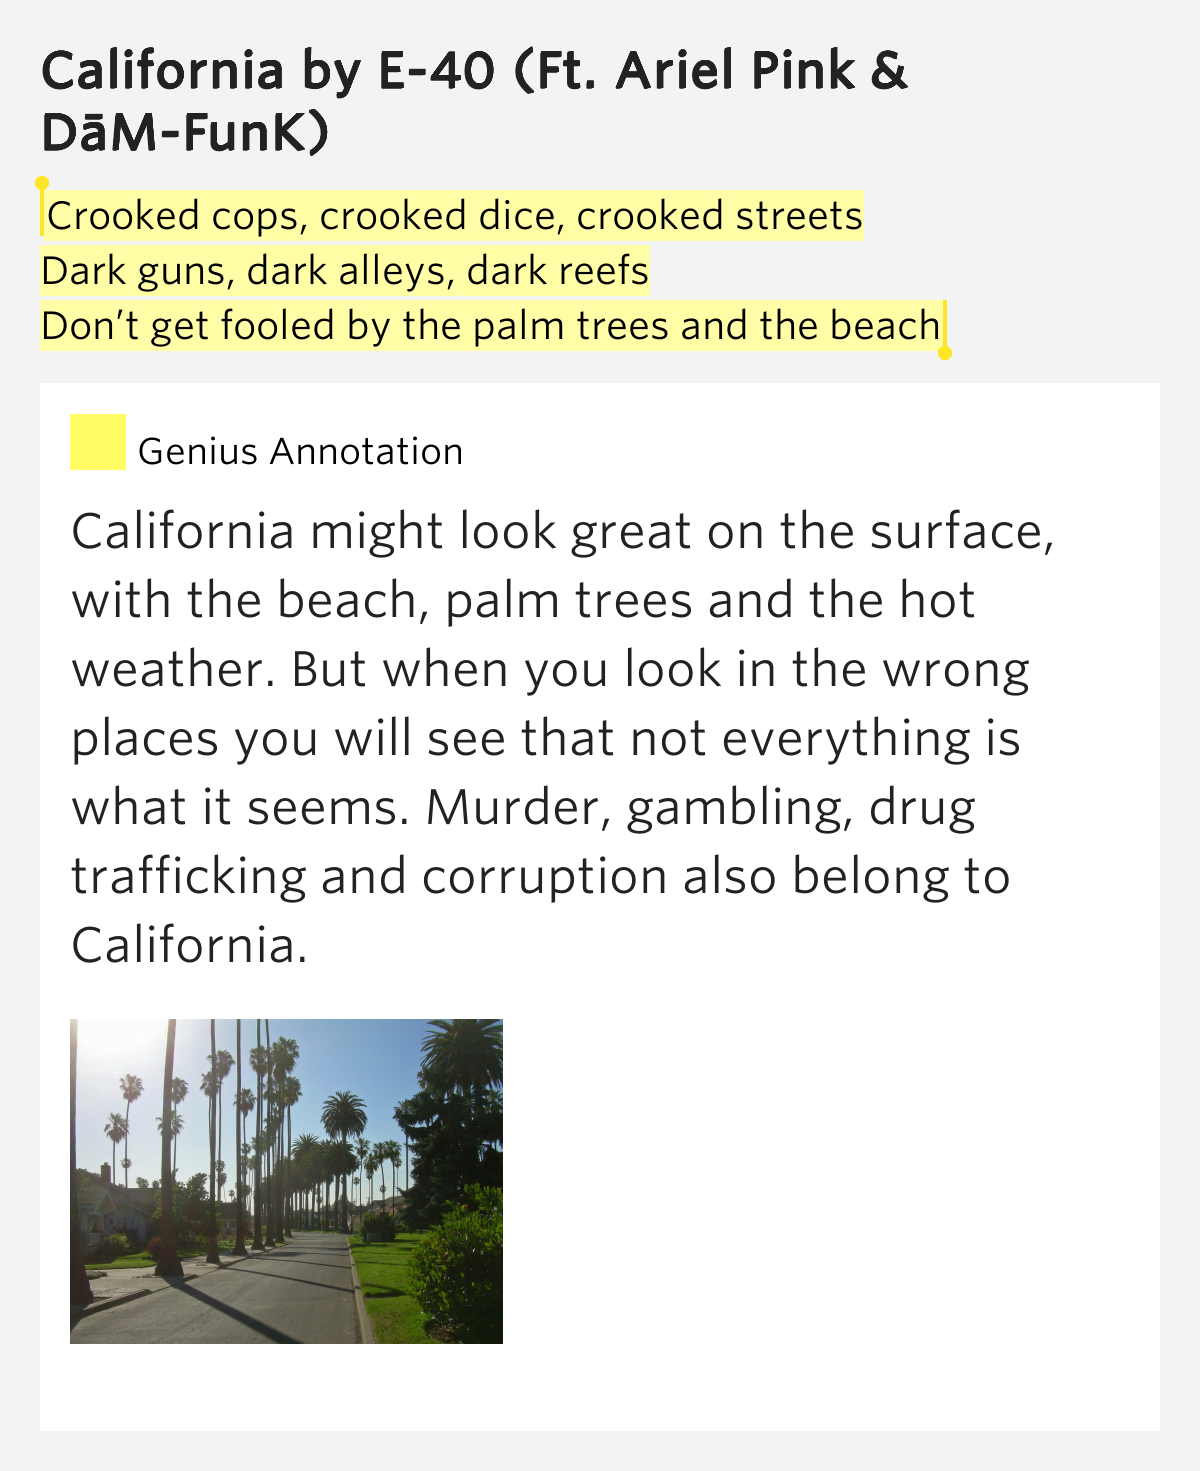 Crooked Cops, Crooked Dice, Crooked Streets / Dark Guns